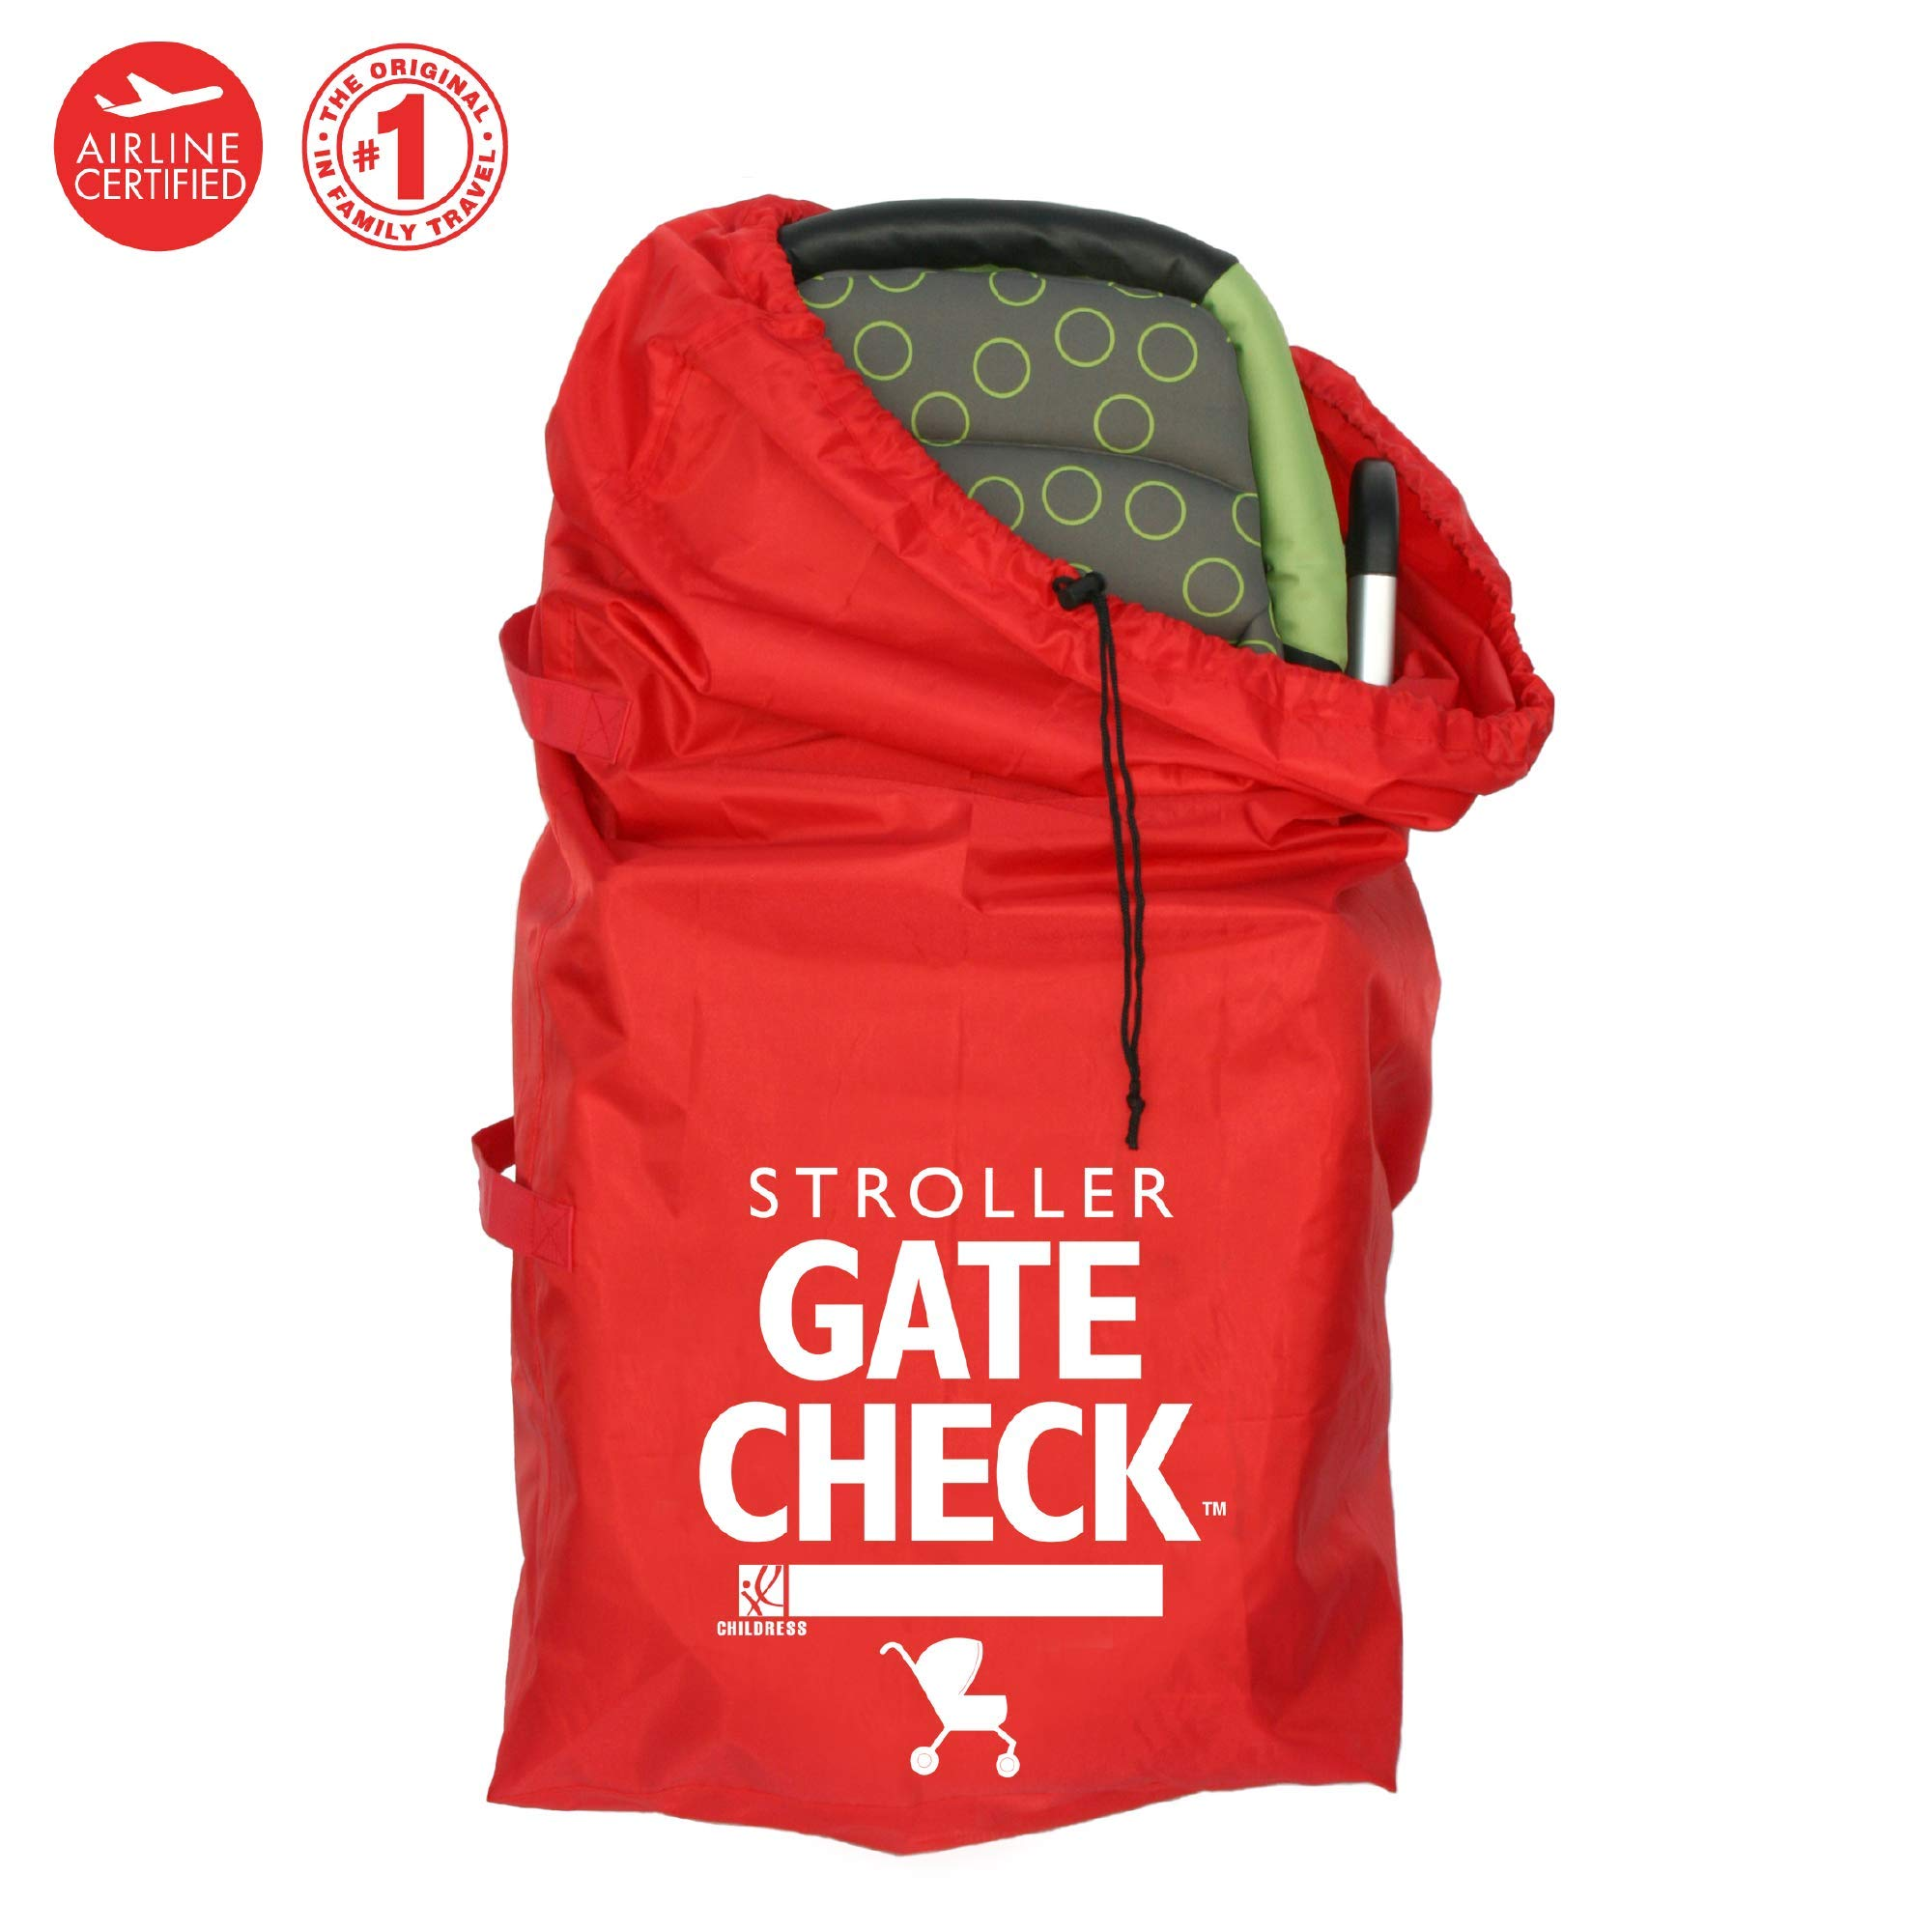 J.L. Childress Gate Check Bag for Standard and Double Strollers, Durable and Lightweight, Water-Resistant, Drawstring Closure with Adjustable Lock, Webbing Handle, Includes Stretch Zipper Pouch, Red by J.L. Childress